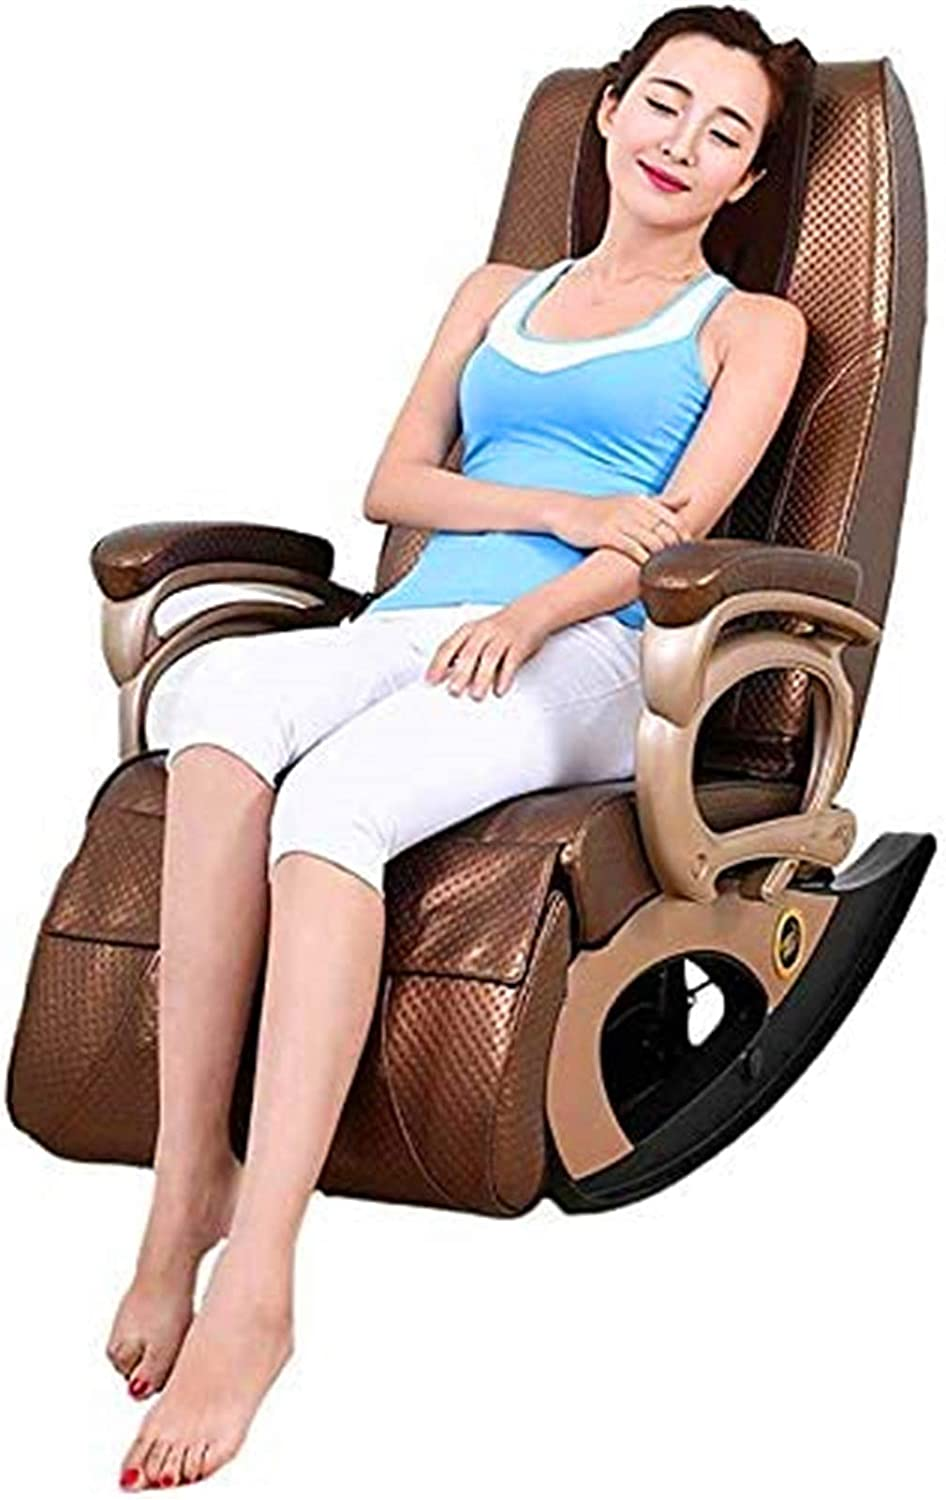 Vacoomcom Massage Chair, Home Multi-Function Sofa Chair Cervical Vertebra Health Massager, Suitable for Legs, Neck, Head, Back Rocking Heating Function